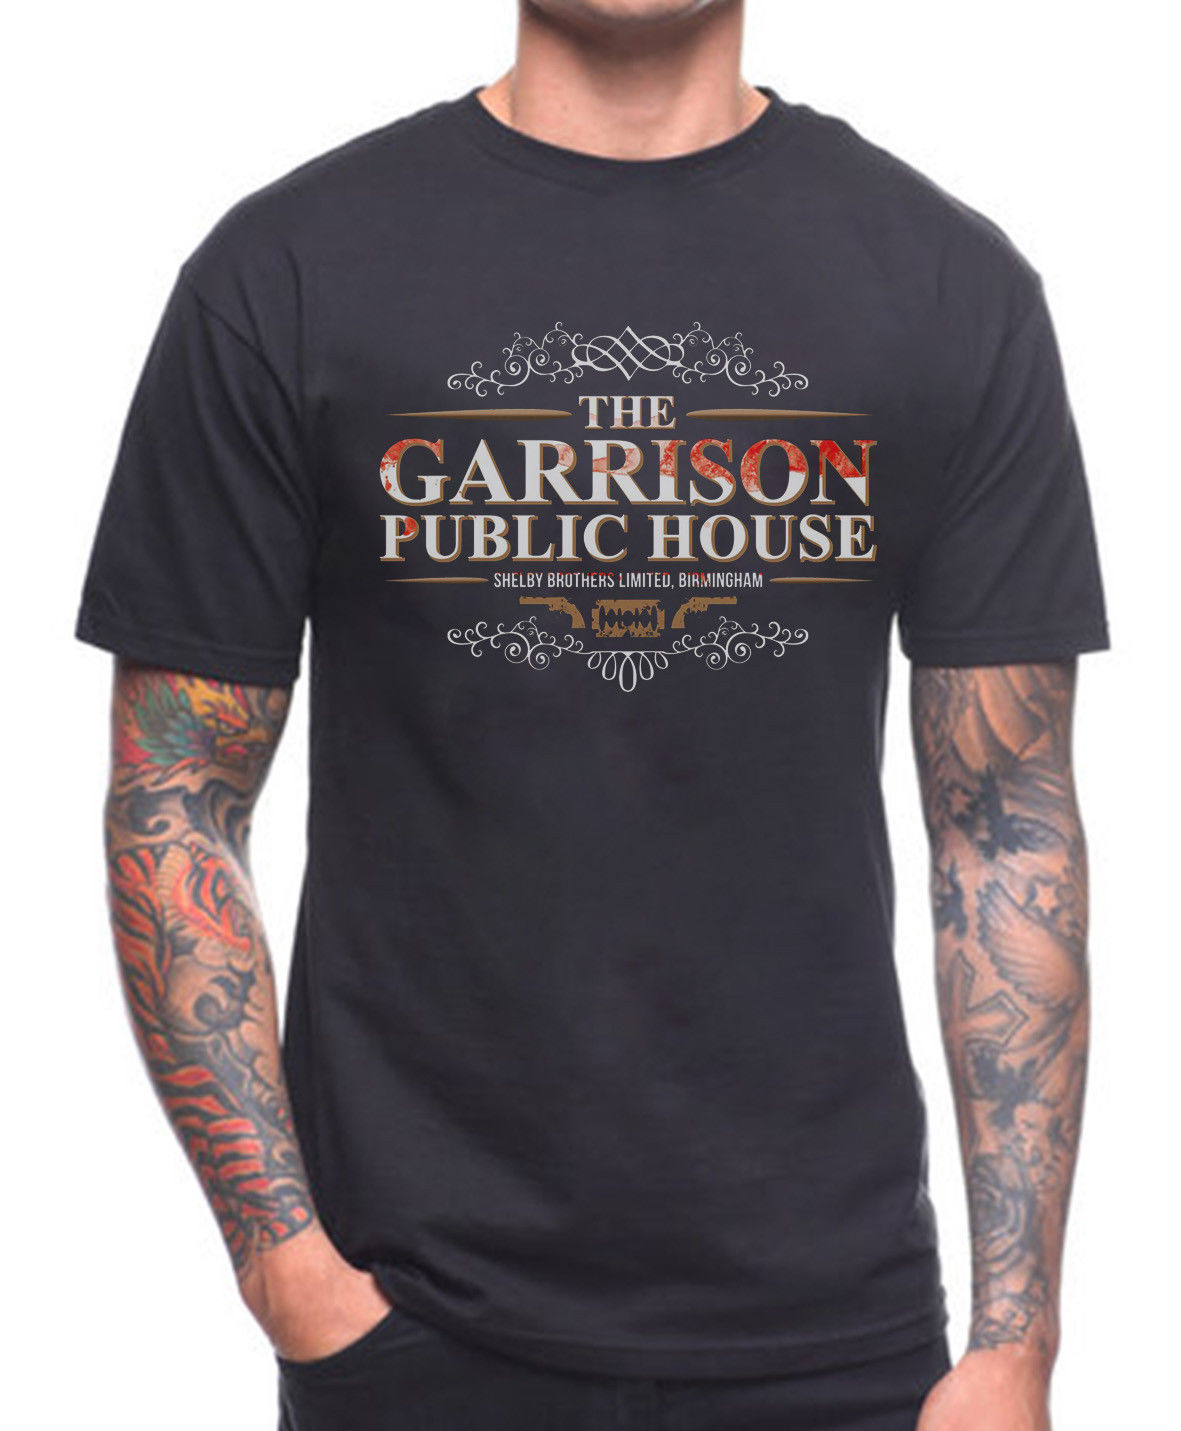 THE GARRISON PUBLIC HOUSE   T     SHIRT   PEAKY BLINDERS Cotton Men   T  -  Shirts   Classical Top Tee Sleeve   Shirts   Fashion Top Tee